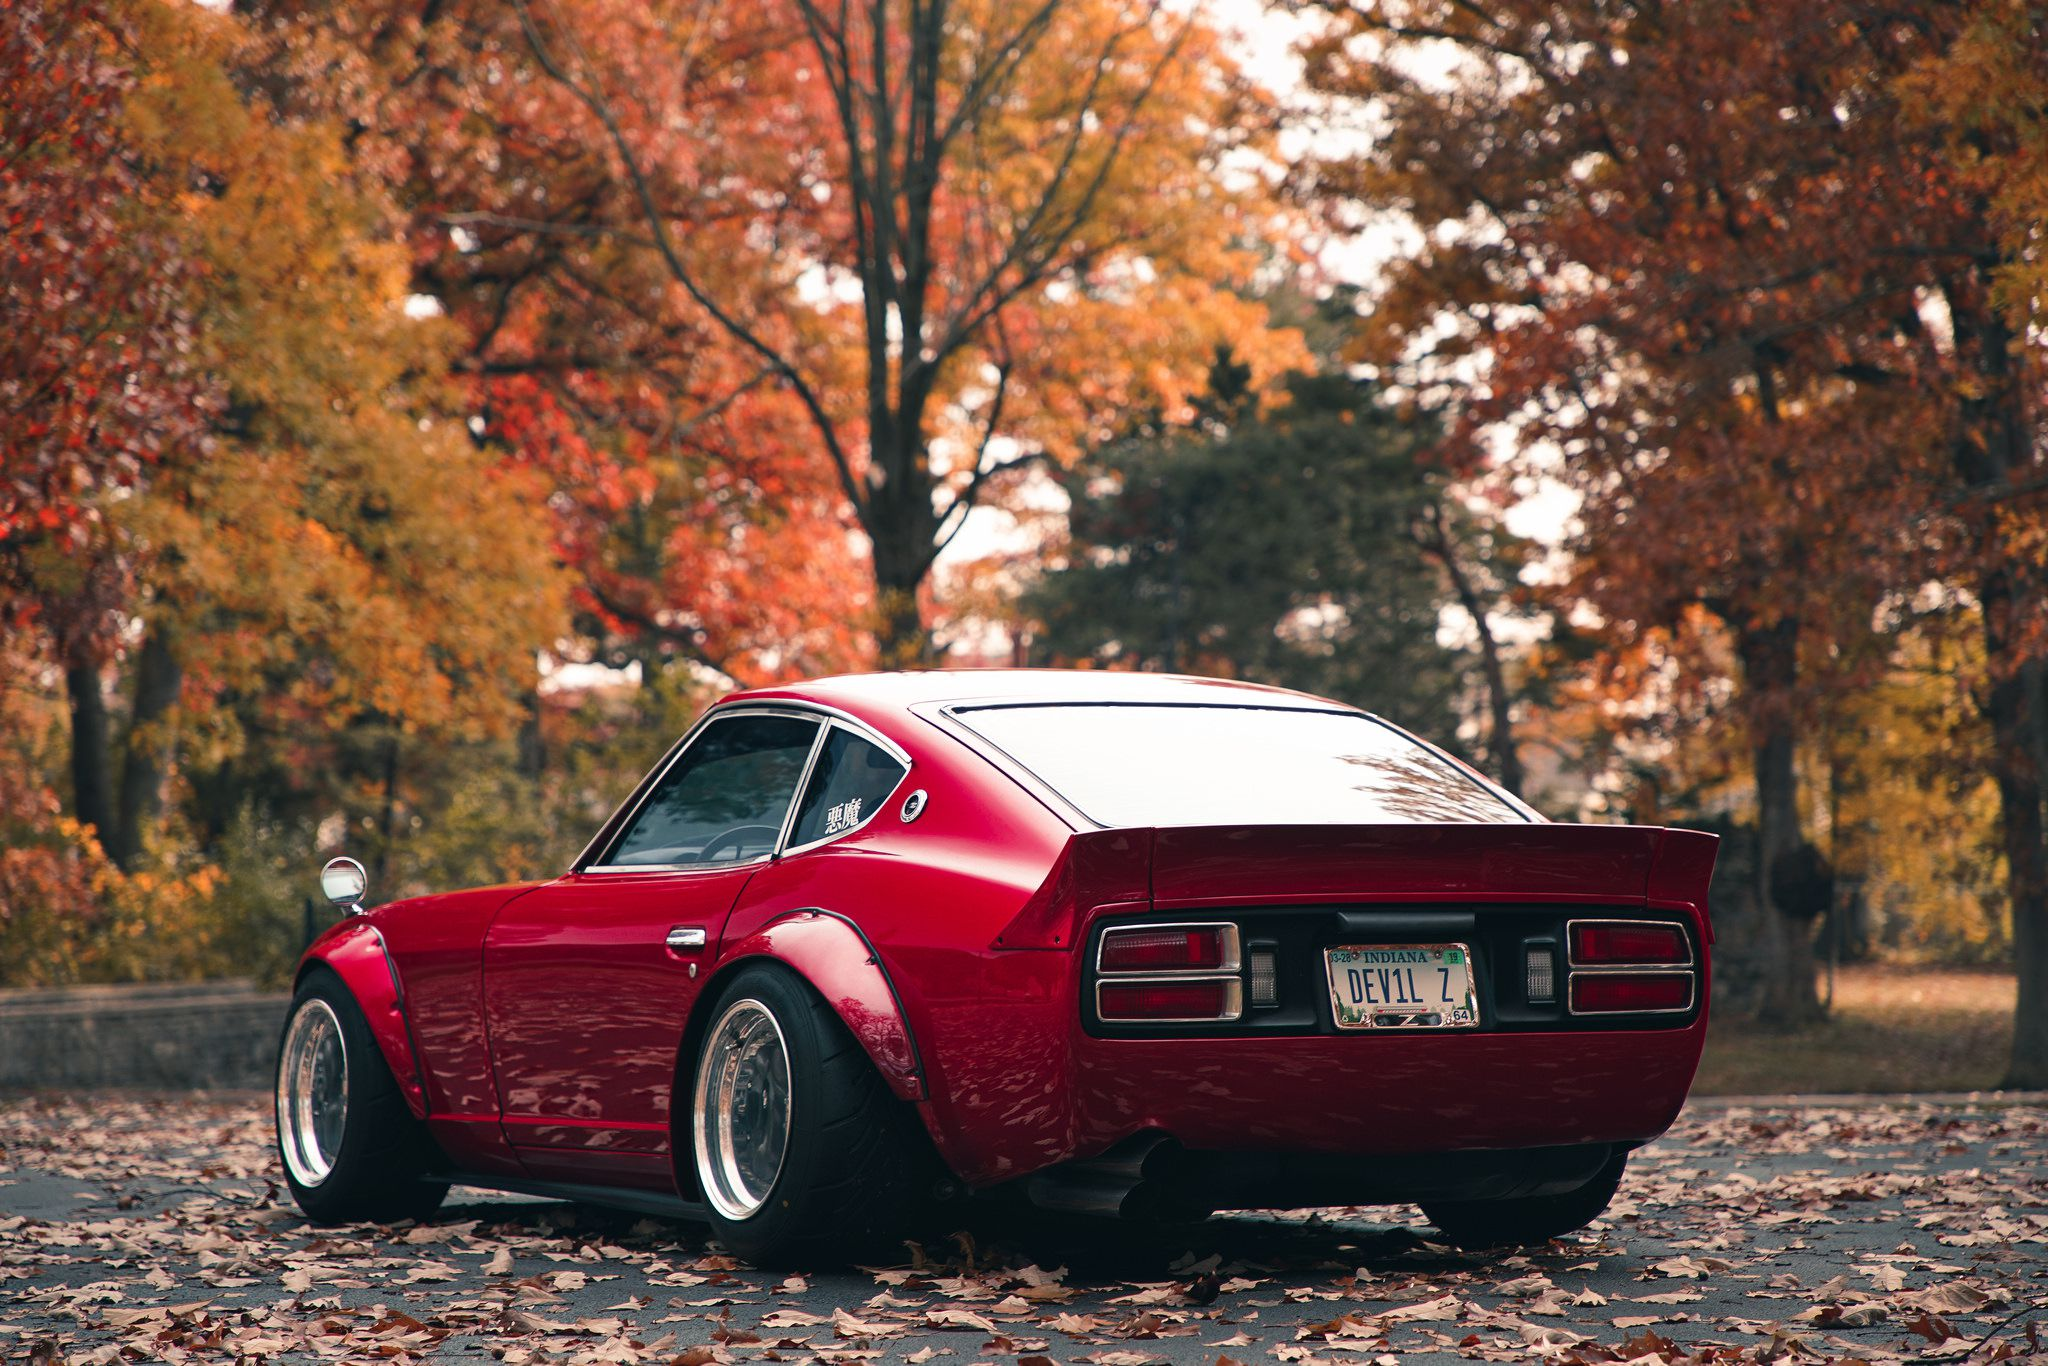 Nissan Datsun 280Z, rear-side, high quality wallpapers